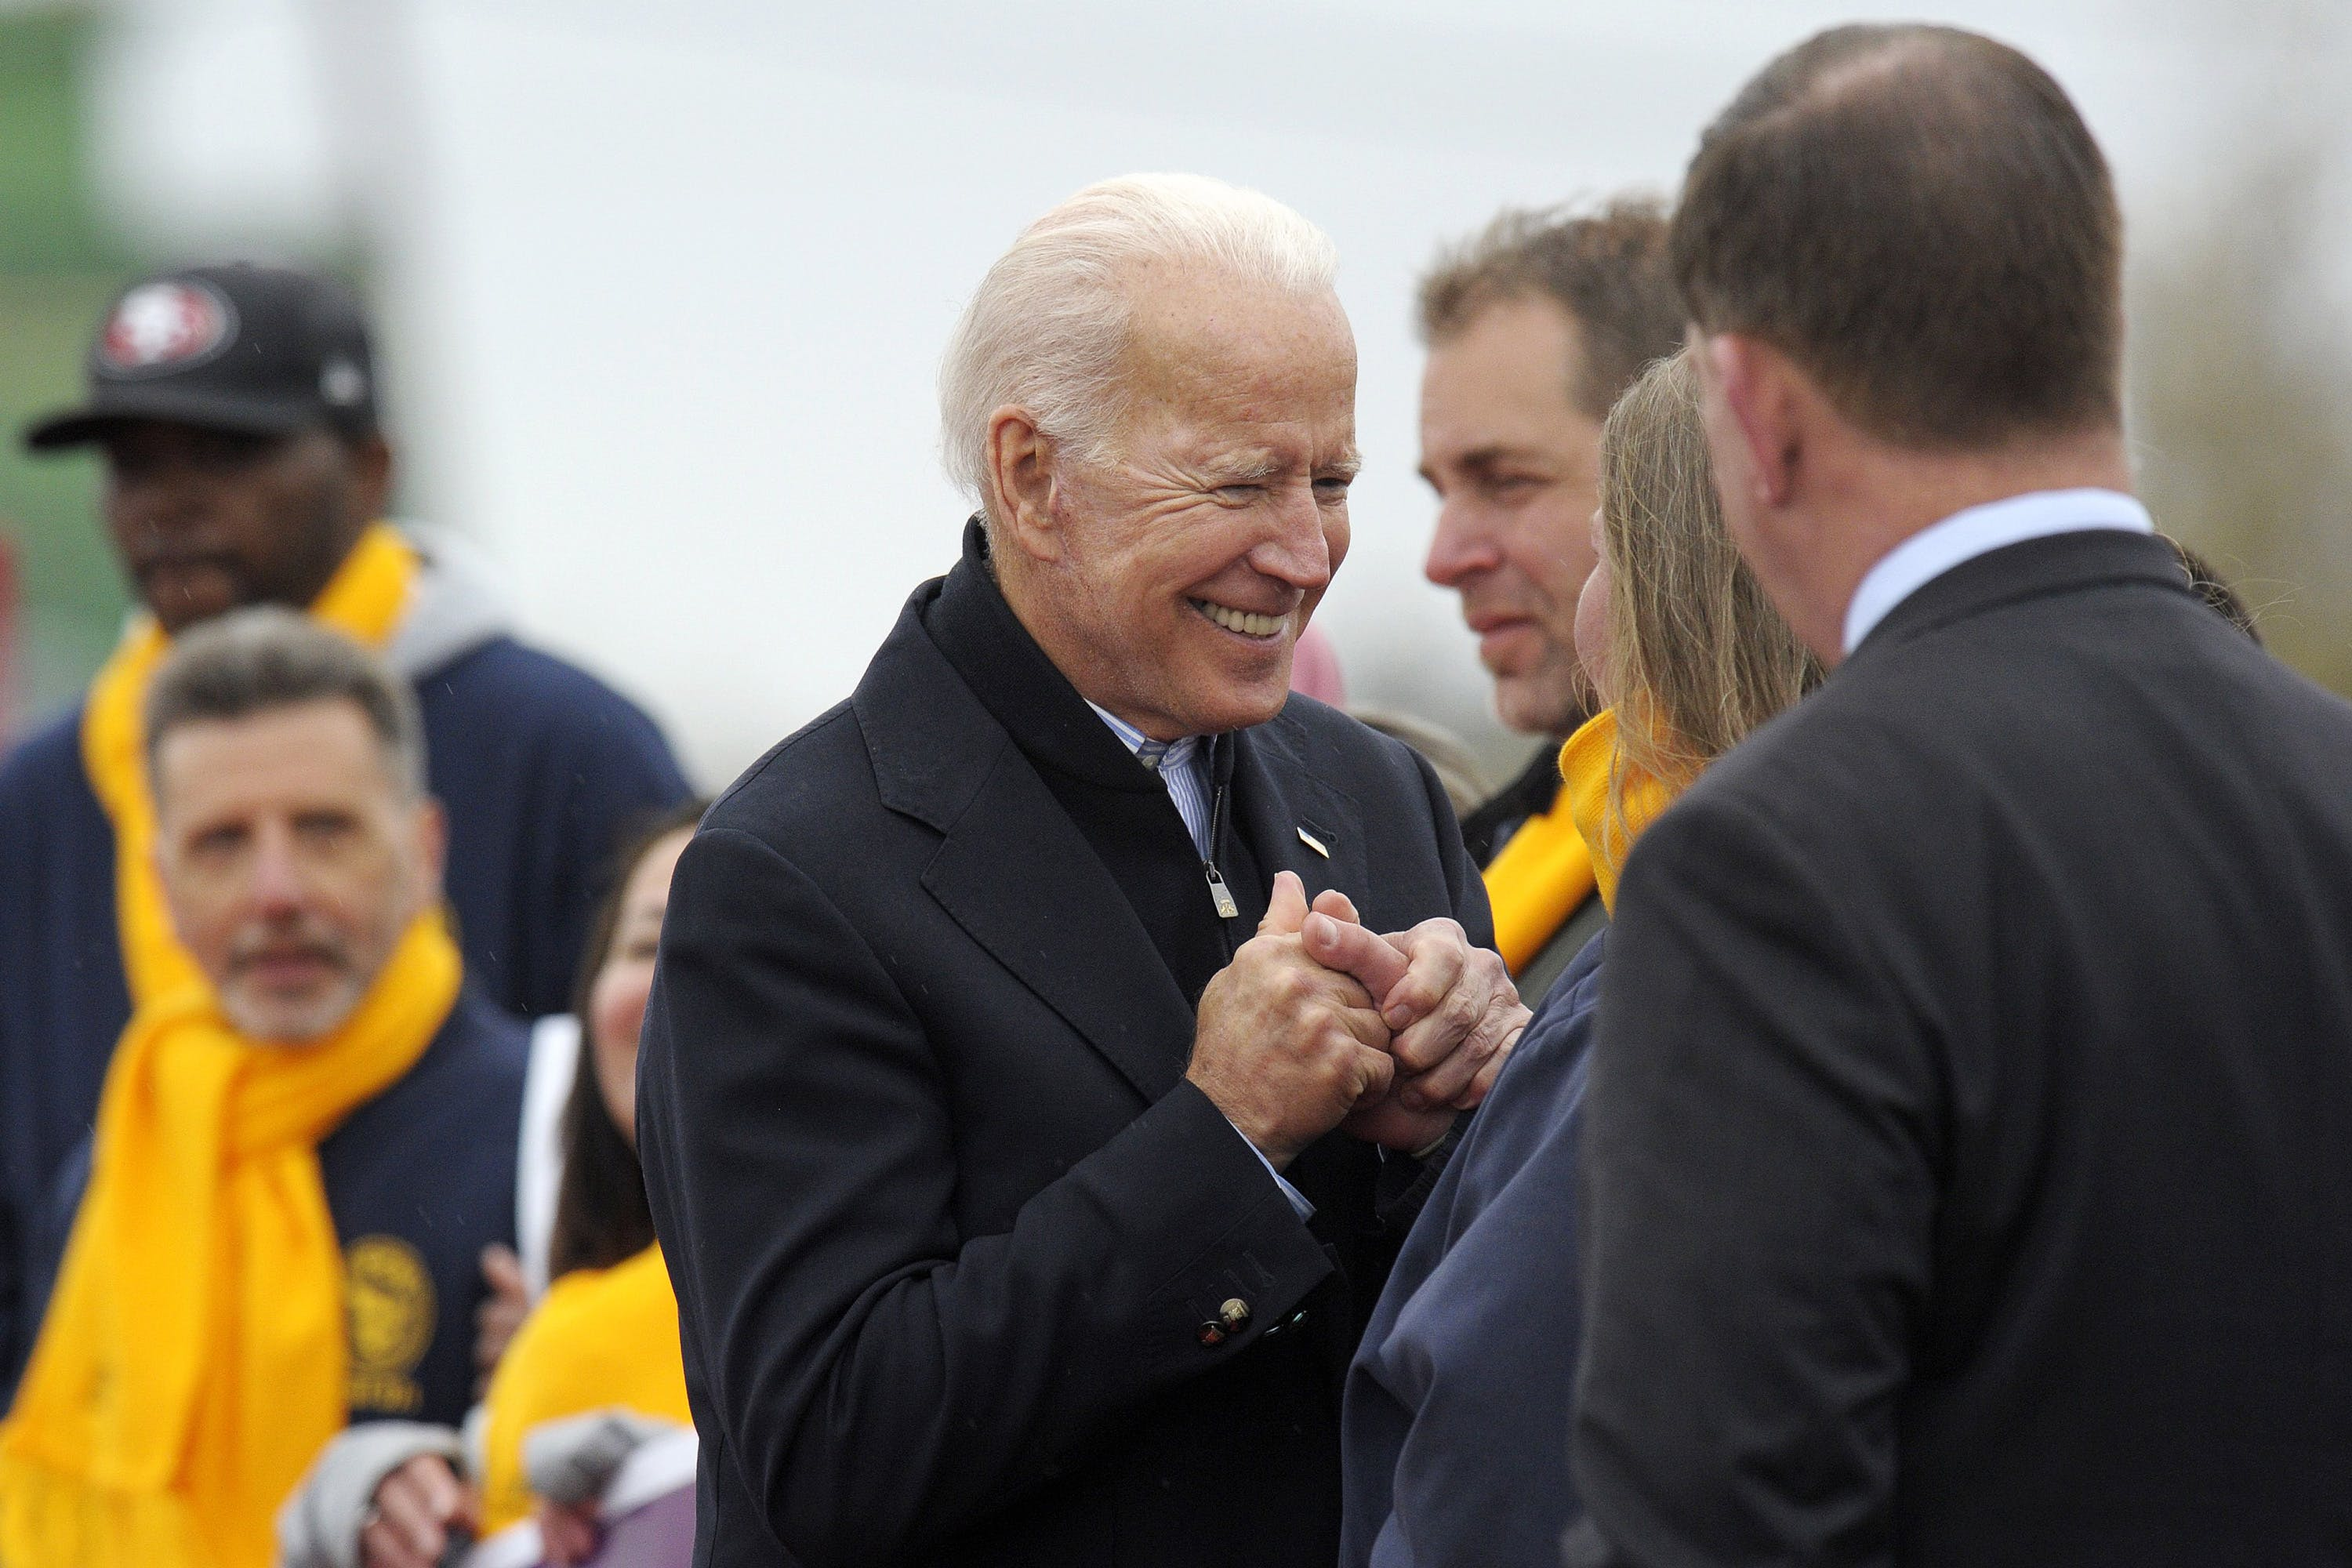 Former US vice president Joe Biden greets people as he prepares to leave a rally organized by UFCW Union members to support Stop and Shop employees on strike throughout the region at the Stop and Shop in Dorchester, Massachusetts, April 18, 2019. - The 76-year-old Biden has not yet officially thrown his hat in the ring for the 2020 presidential election. (Photo by JOSEPH PREZIOSO / AFP)